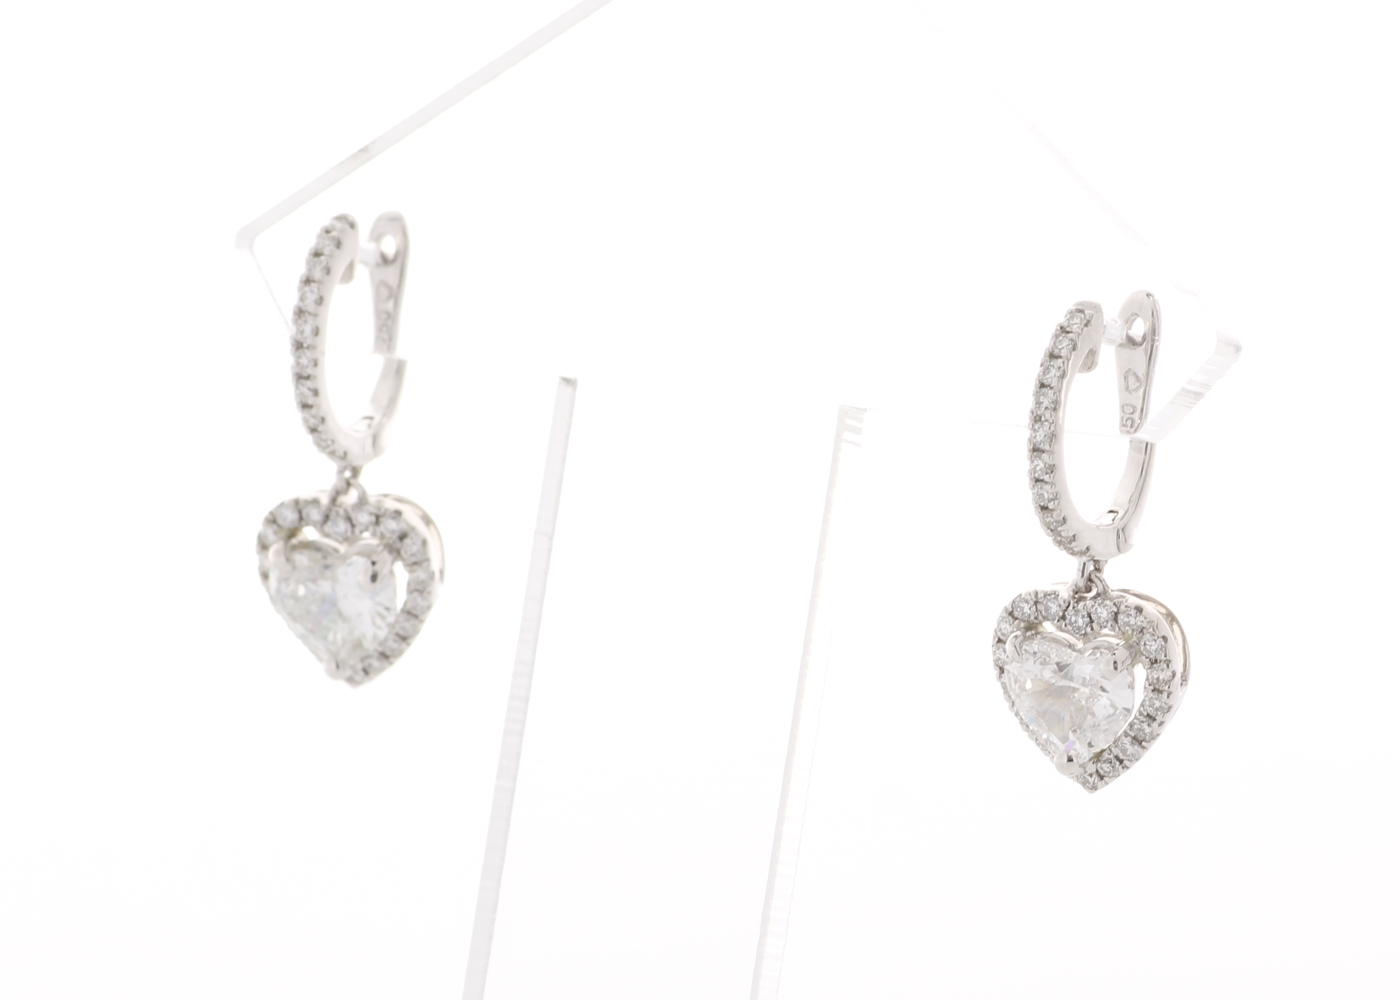 18ct White Gold Heart Shape Halo Drop Earring 1.74 Carats - Image 2 of 4